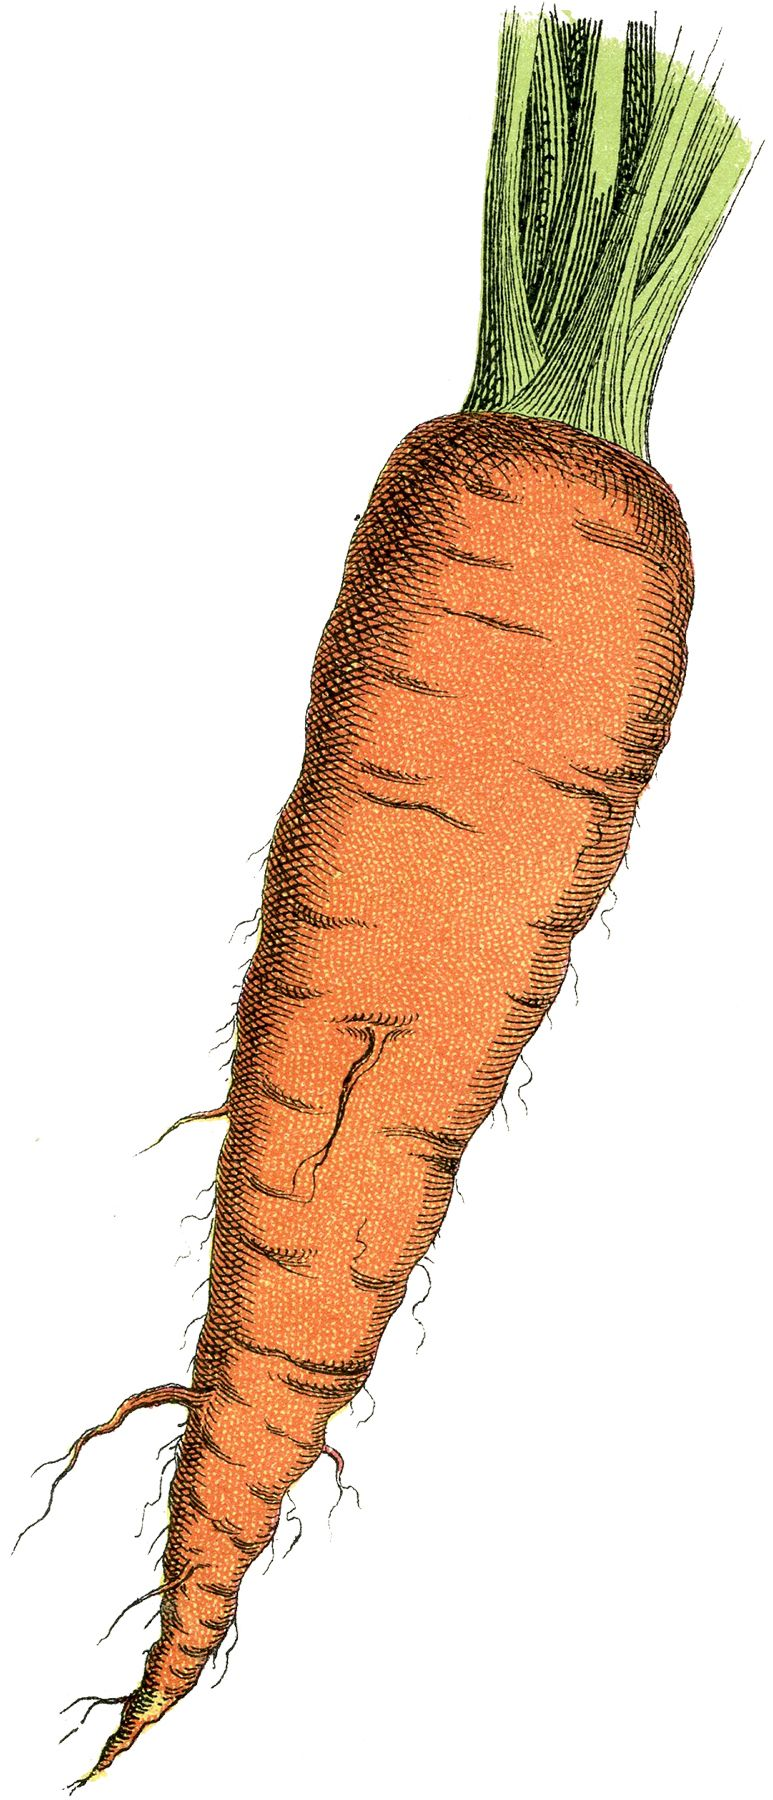 Carrots clipart edible root. Free carrot image pinterest